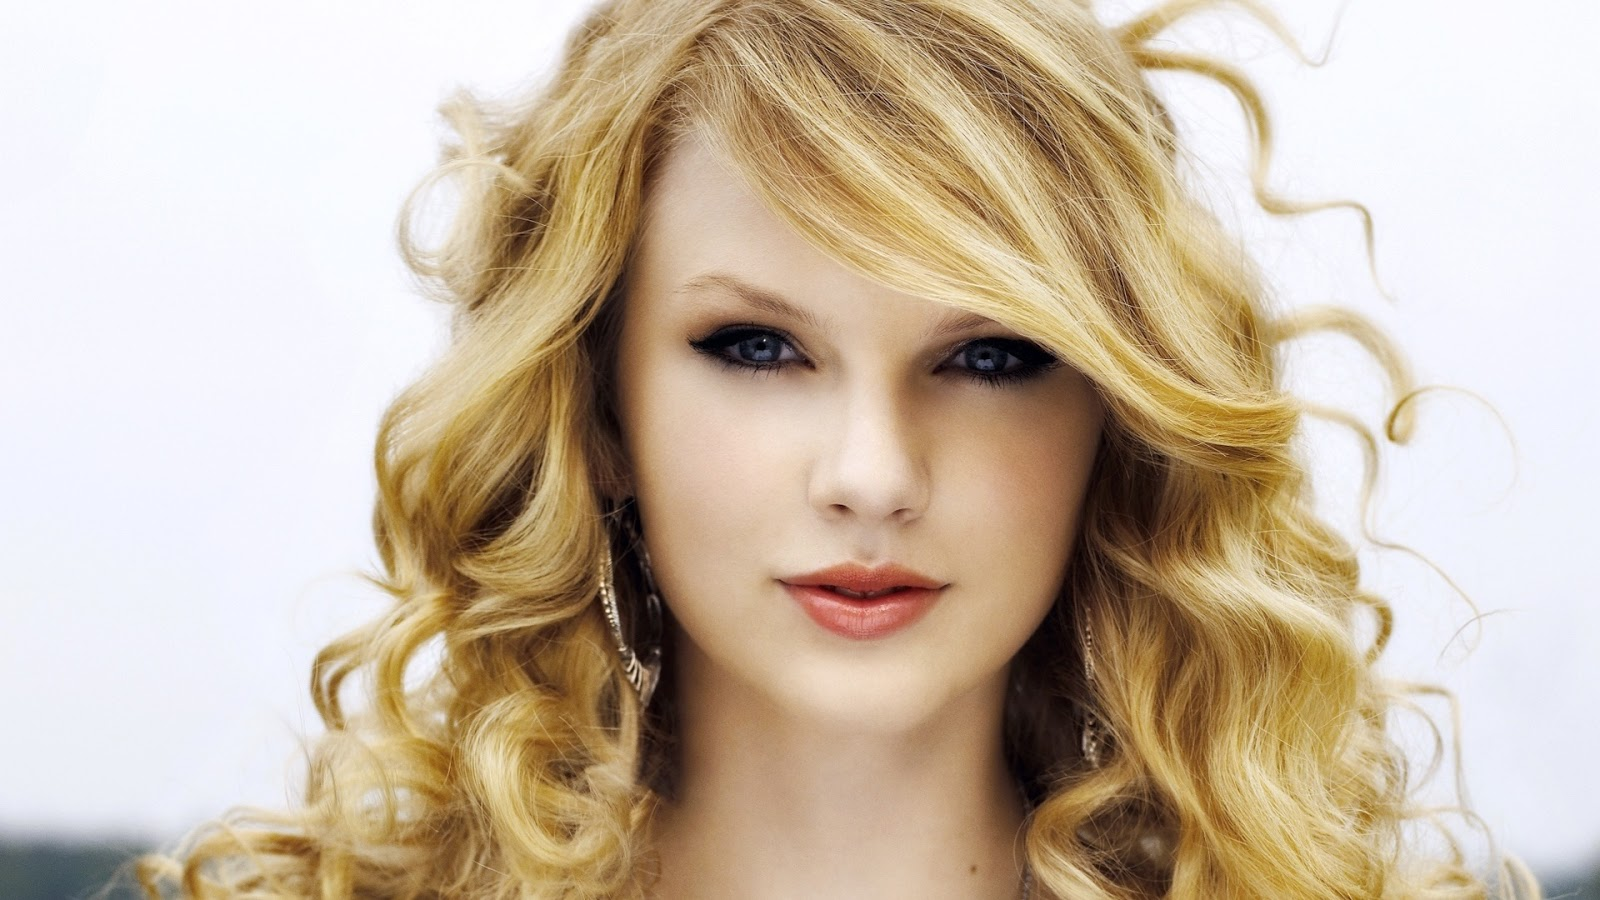 Taylor Swift Hd Wallpapers  Wall Pc-9383